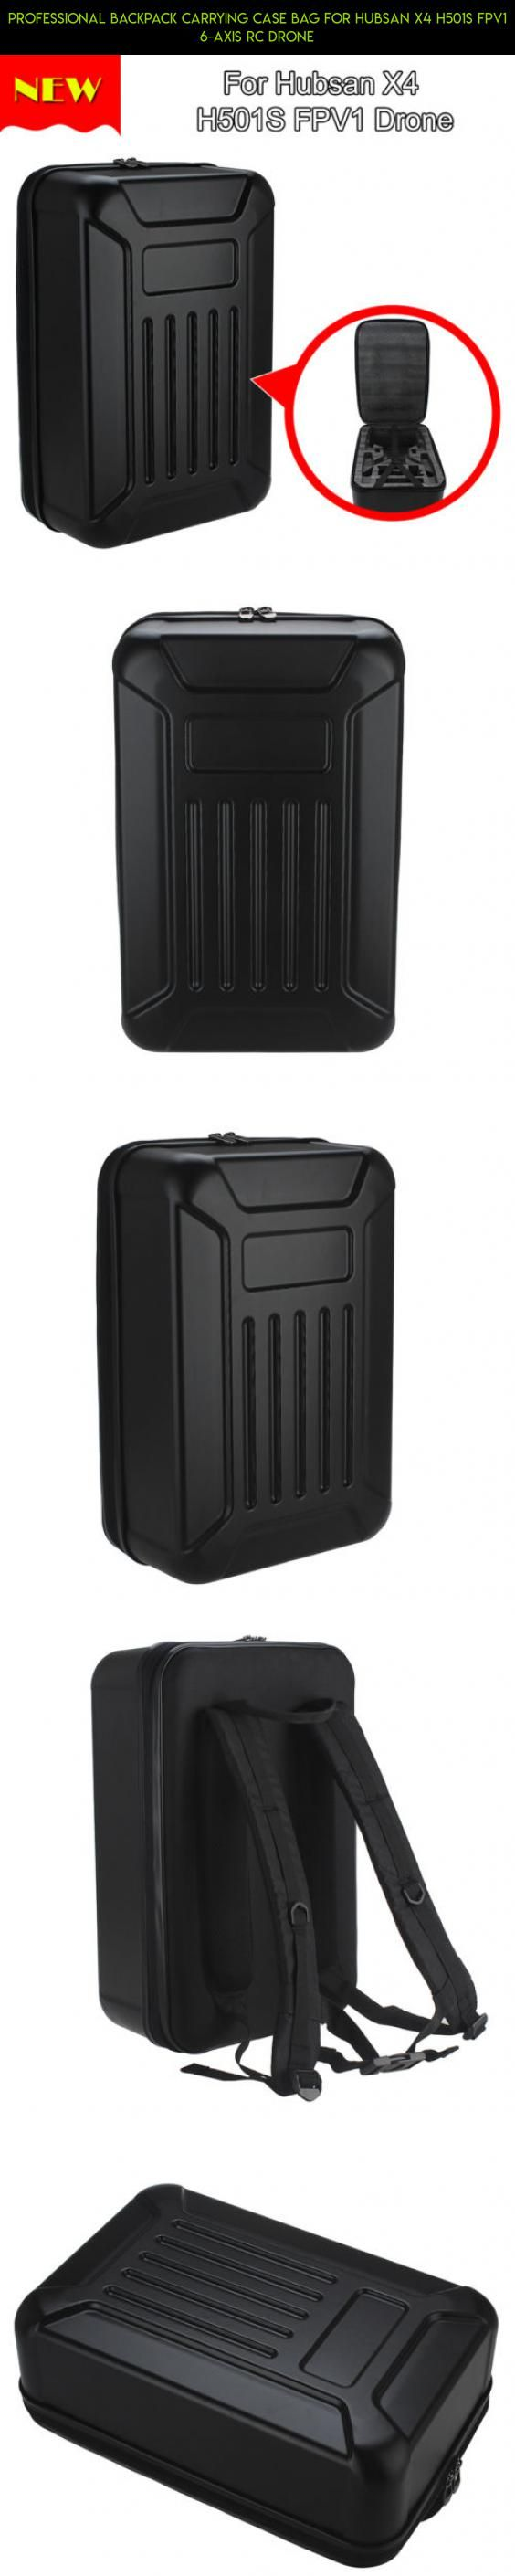 Professional Backpack Carrying Case Bag for Hubsan X4 H501S FPV1 6-Axis RC Drone #gadgets #camera #professional #products #shopping #tech #parts #racing #hubsan #drone #technology #fpv #kit #plans